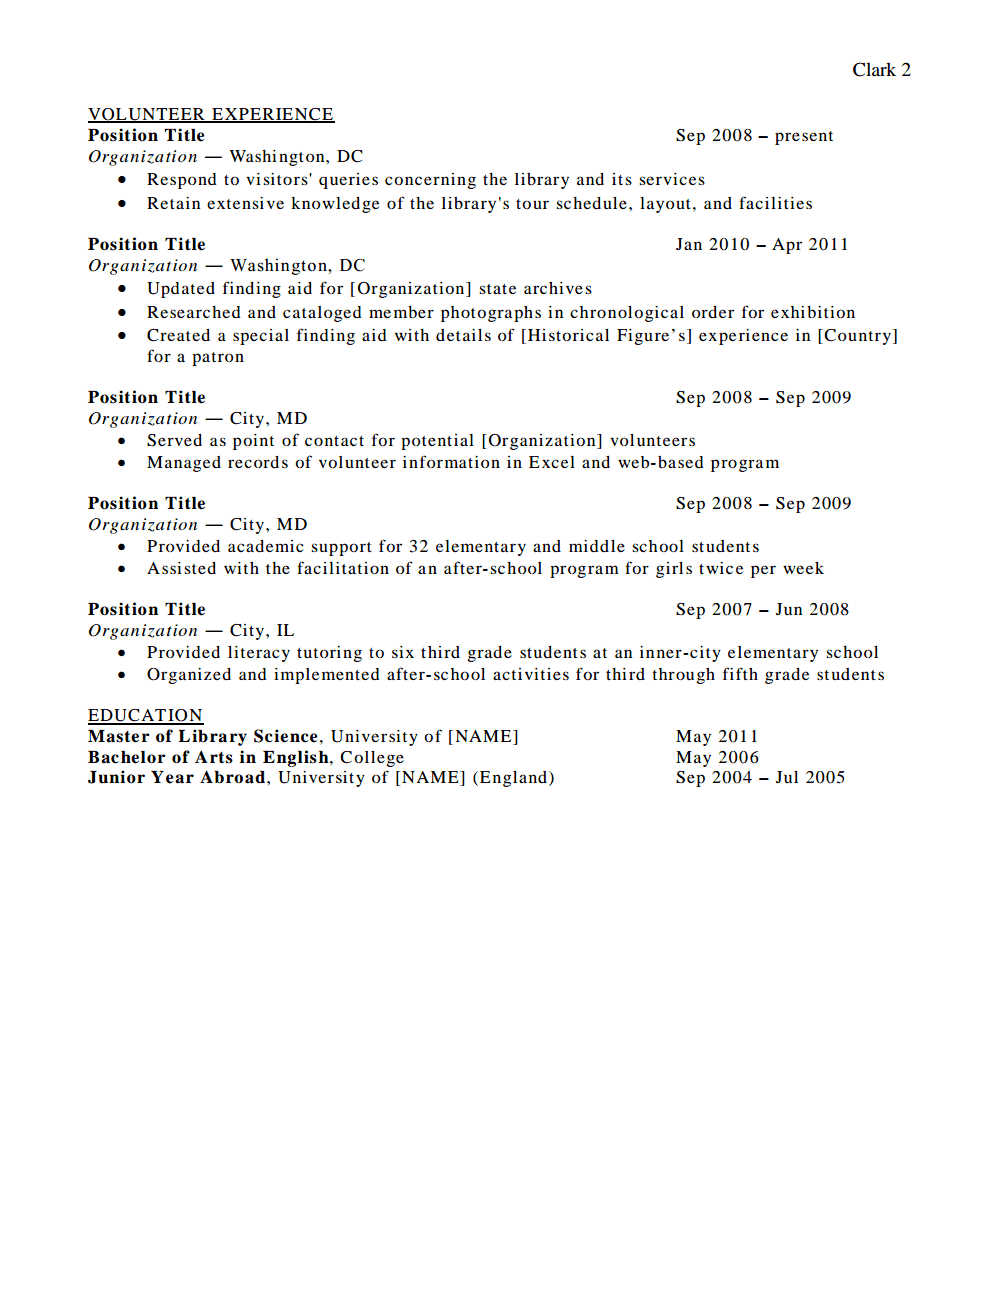 resume submit for job